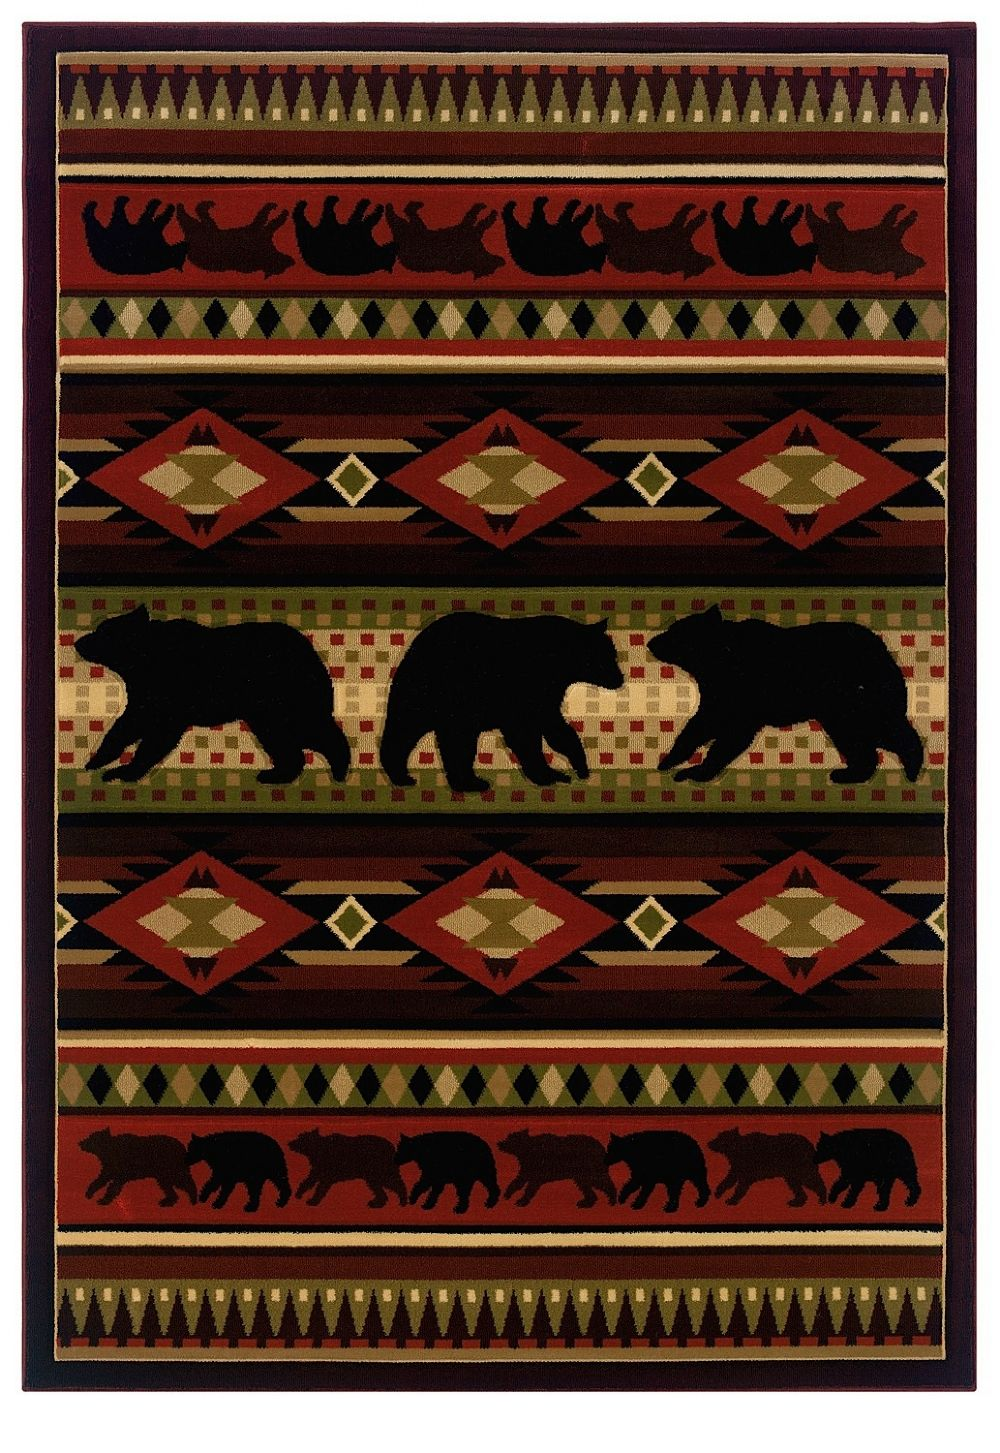 united weavers contours-jq southwestern/lodge area rug collection